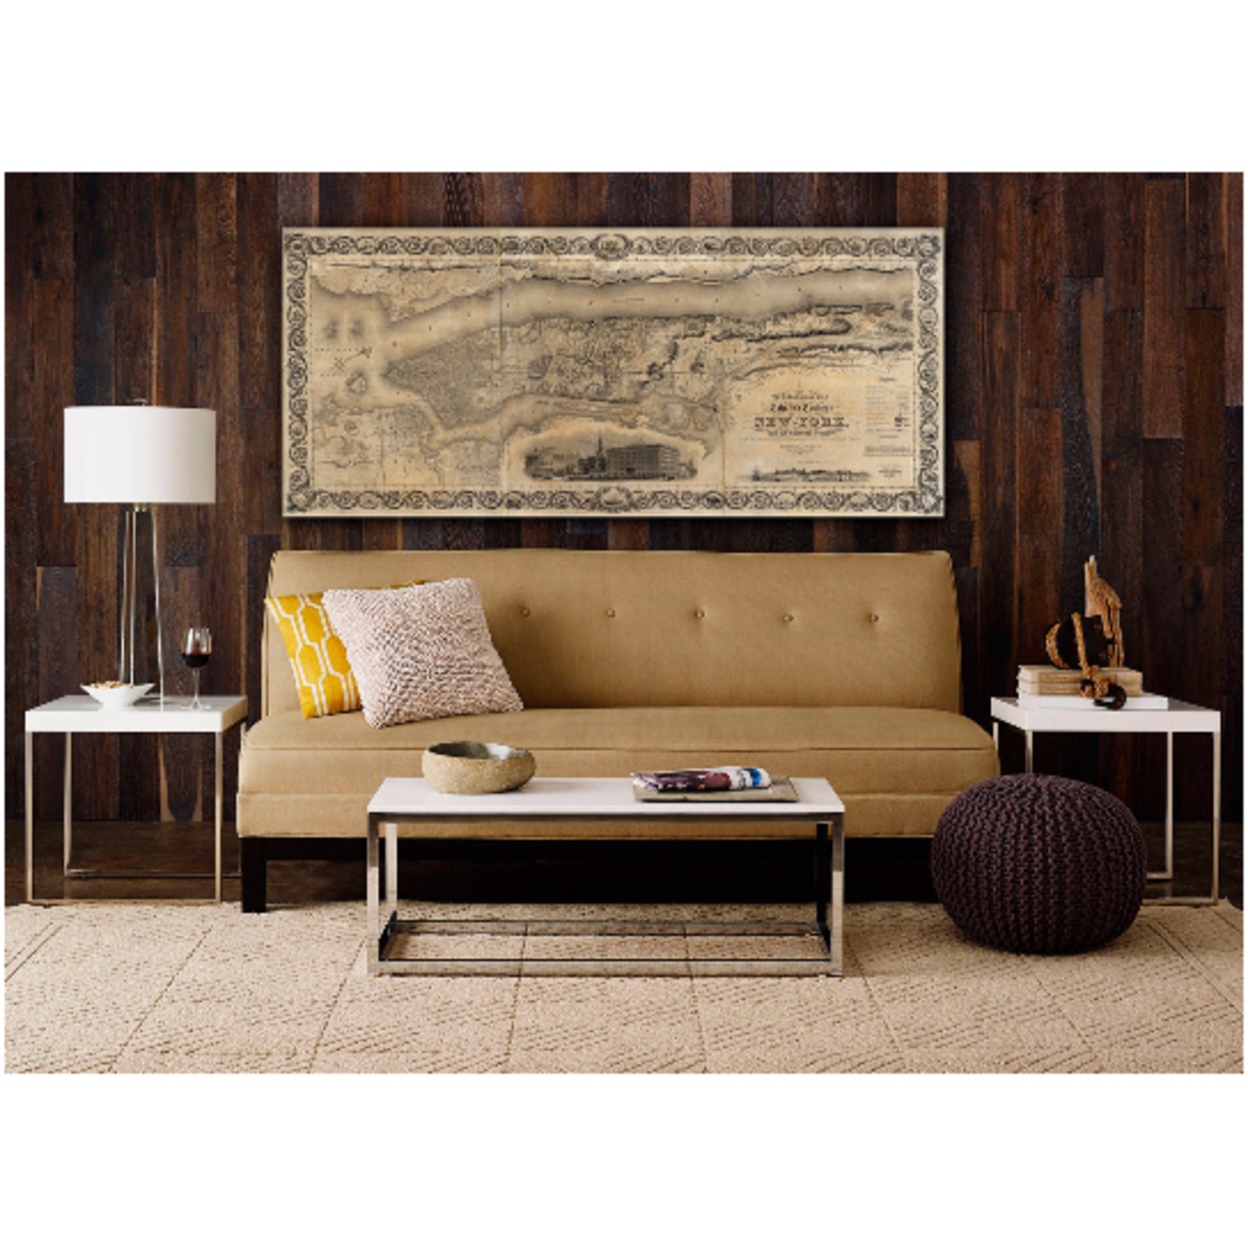 """Map of Manhattan (1836) Big Manhattan map giant Old Antique Restoration Hardware Style Map of New York City Large Manhattan Map NYC Map - 12\"""" x 30\"""" inches [$24.00] 56d2da43893d6ff4478b4d81"""